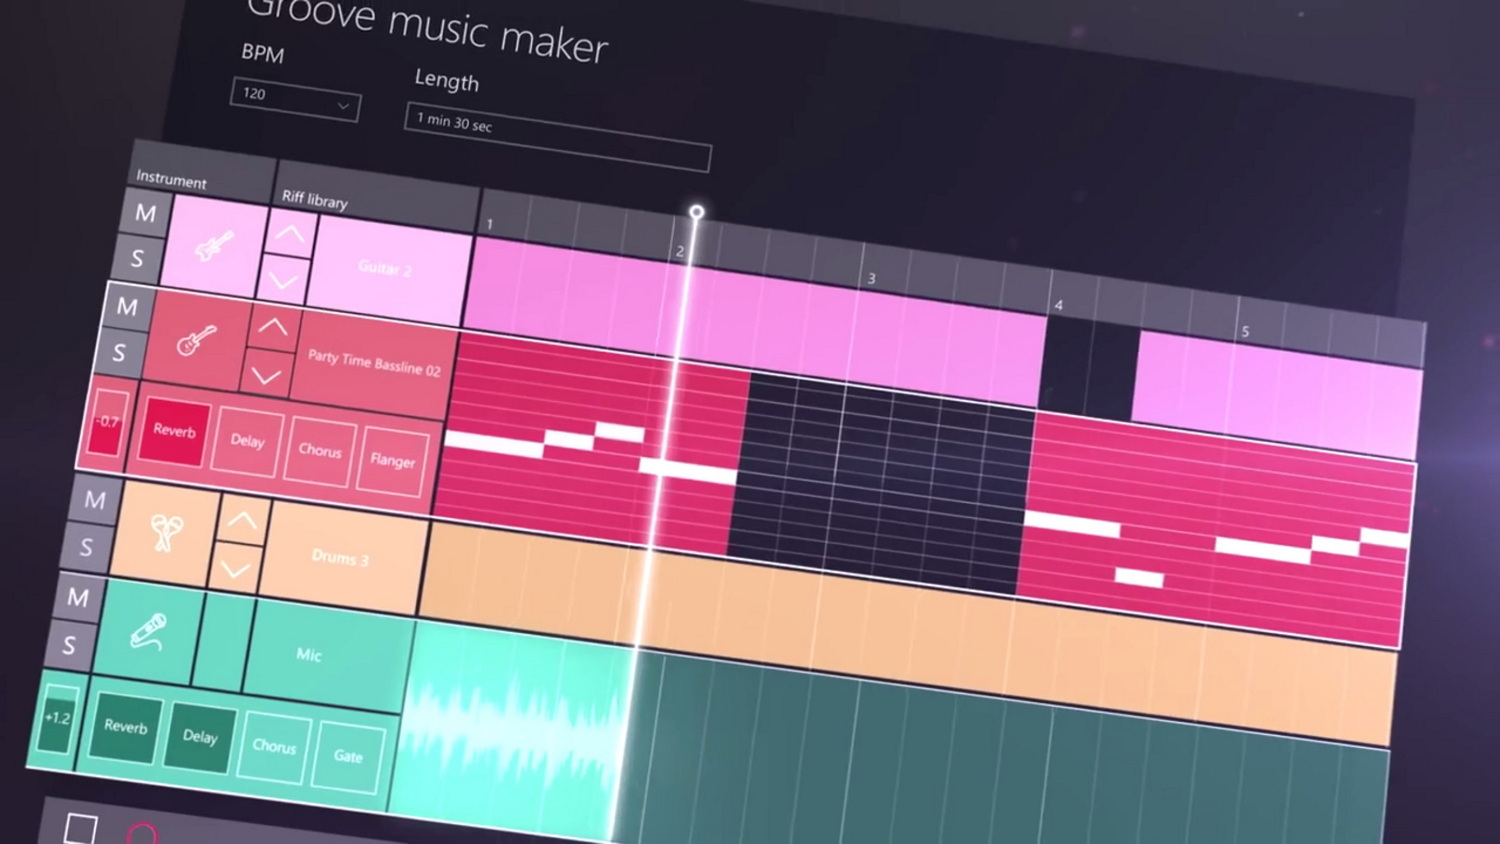 Groove music maker for the WIndows 10 Creators Update